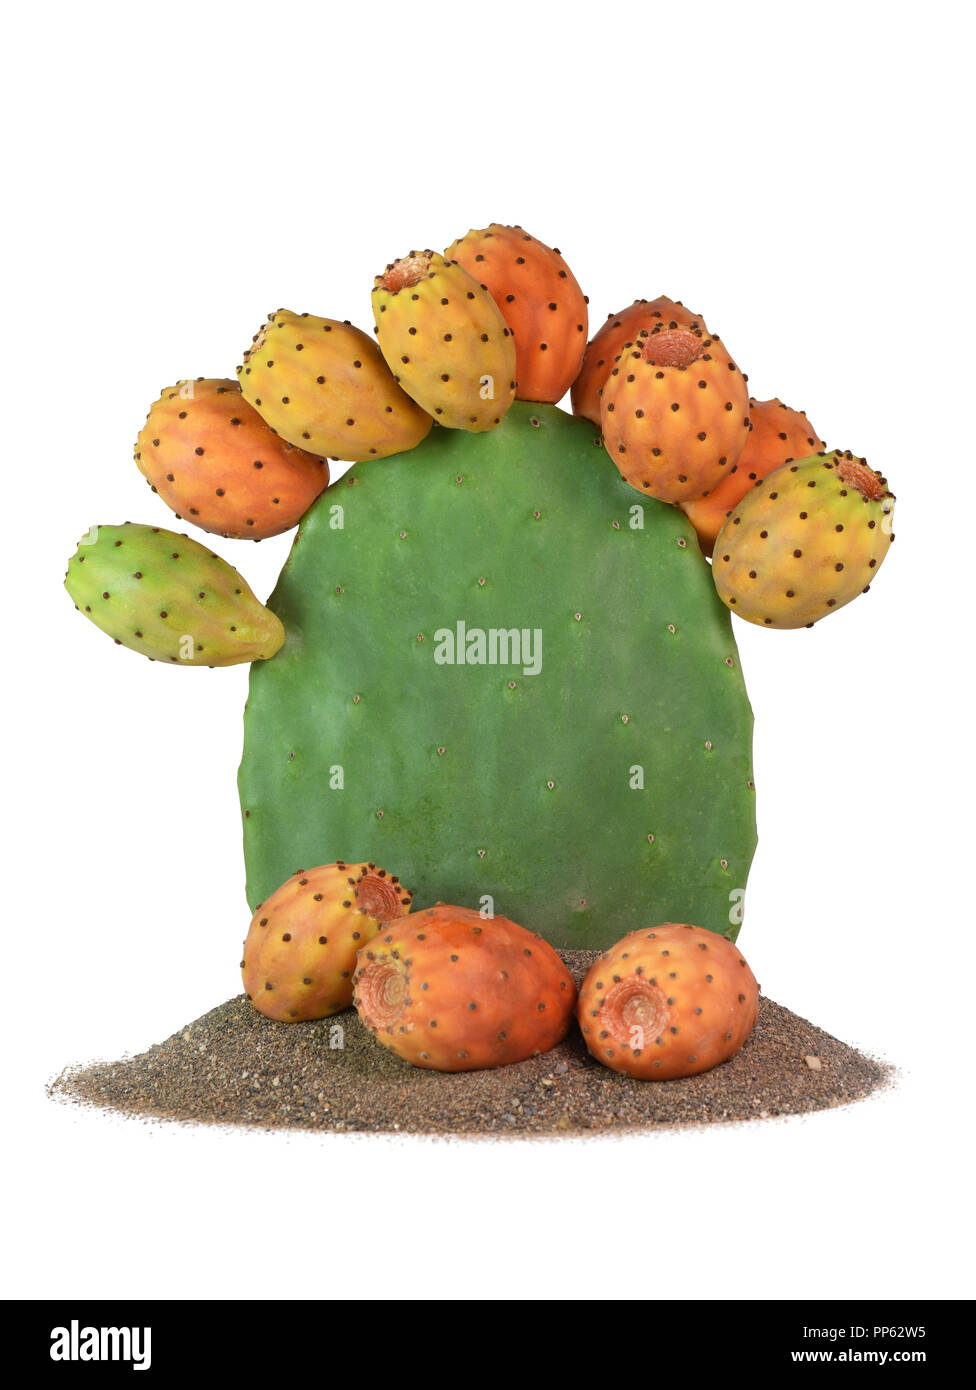 isolated prickly pear cactus full fruit  plant on sand with figs on the base vertical with copy space on subject. - Stock Image